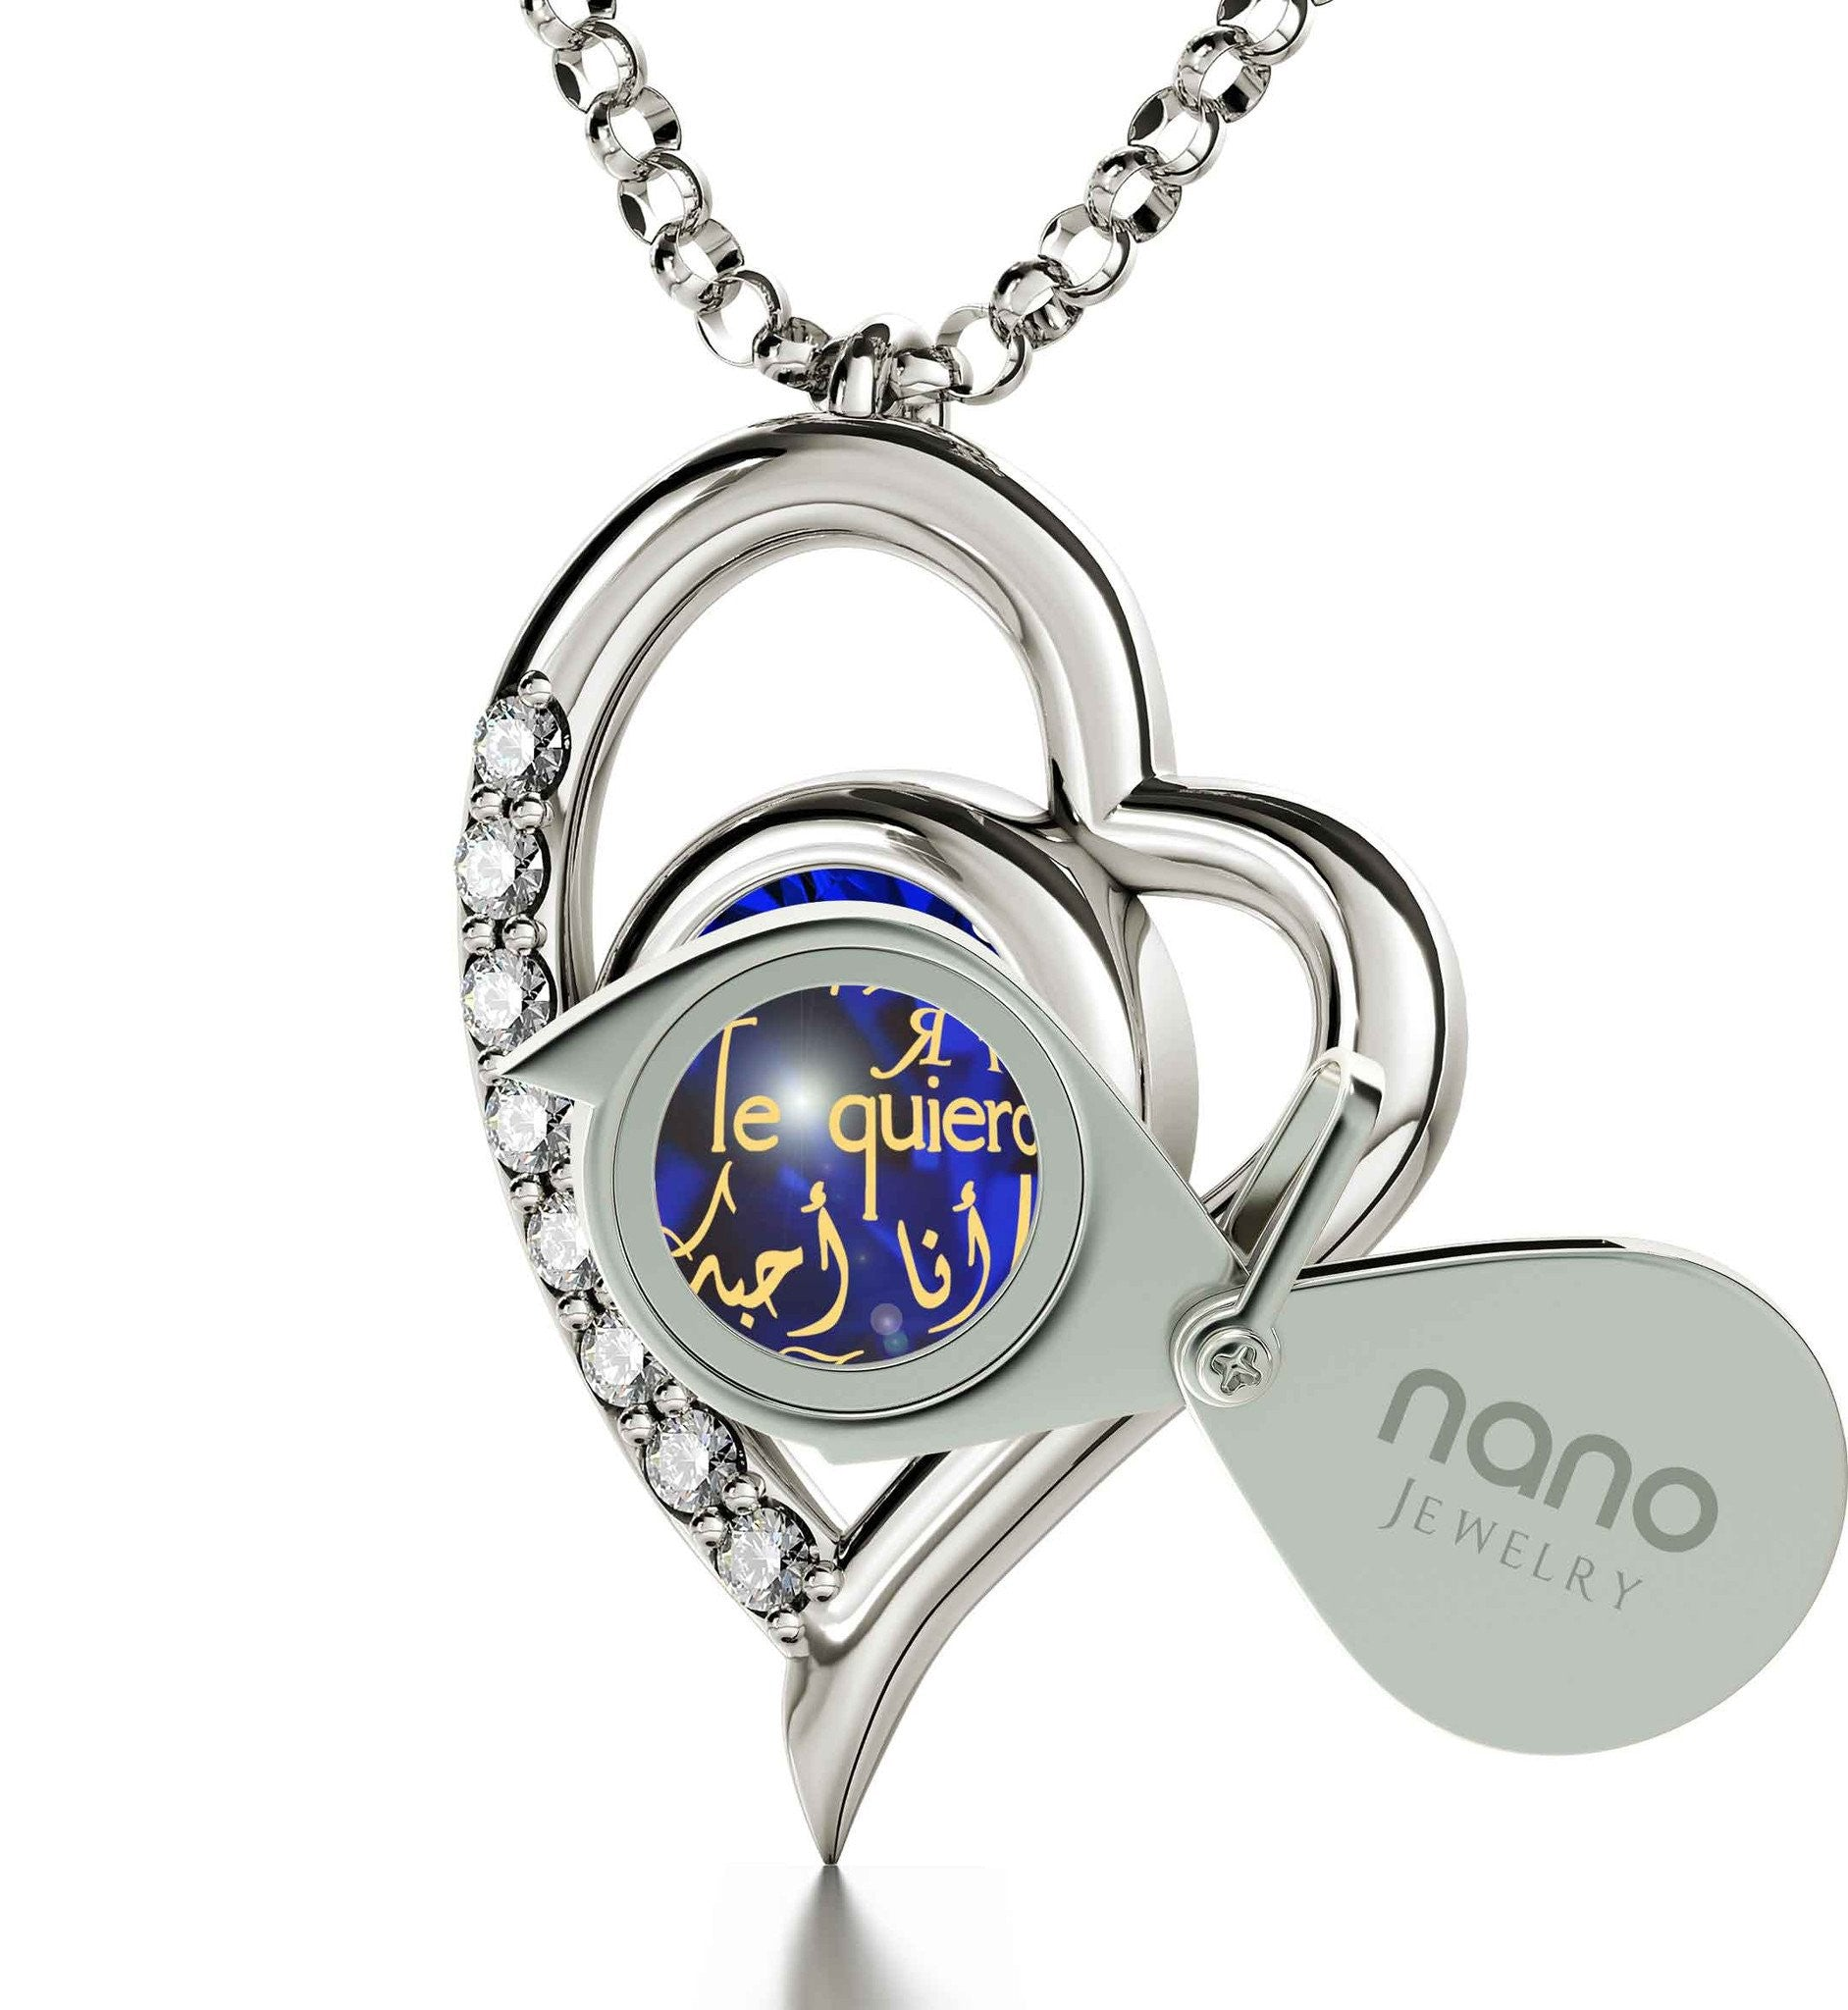 "Good Presents for Girlfriend: ""Je T'aime"", CZ Aquamarine Stone, Xmas Ideas for Her by Nano Jewelry"